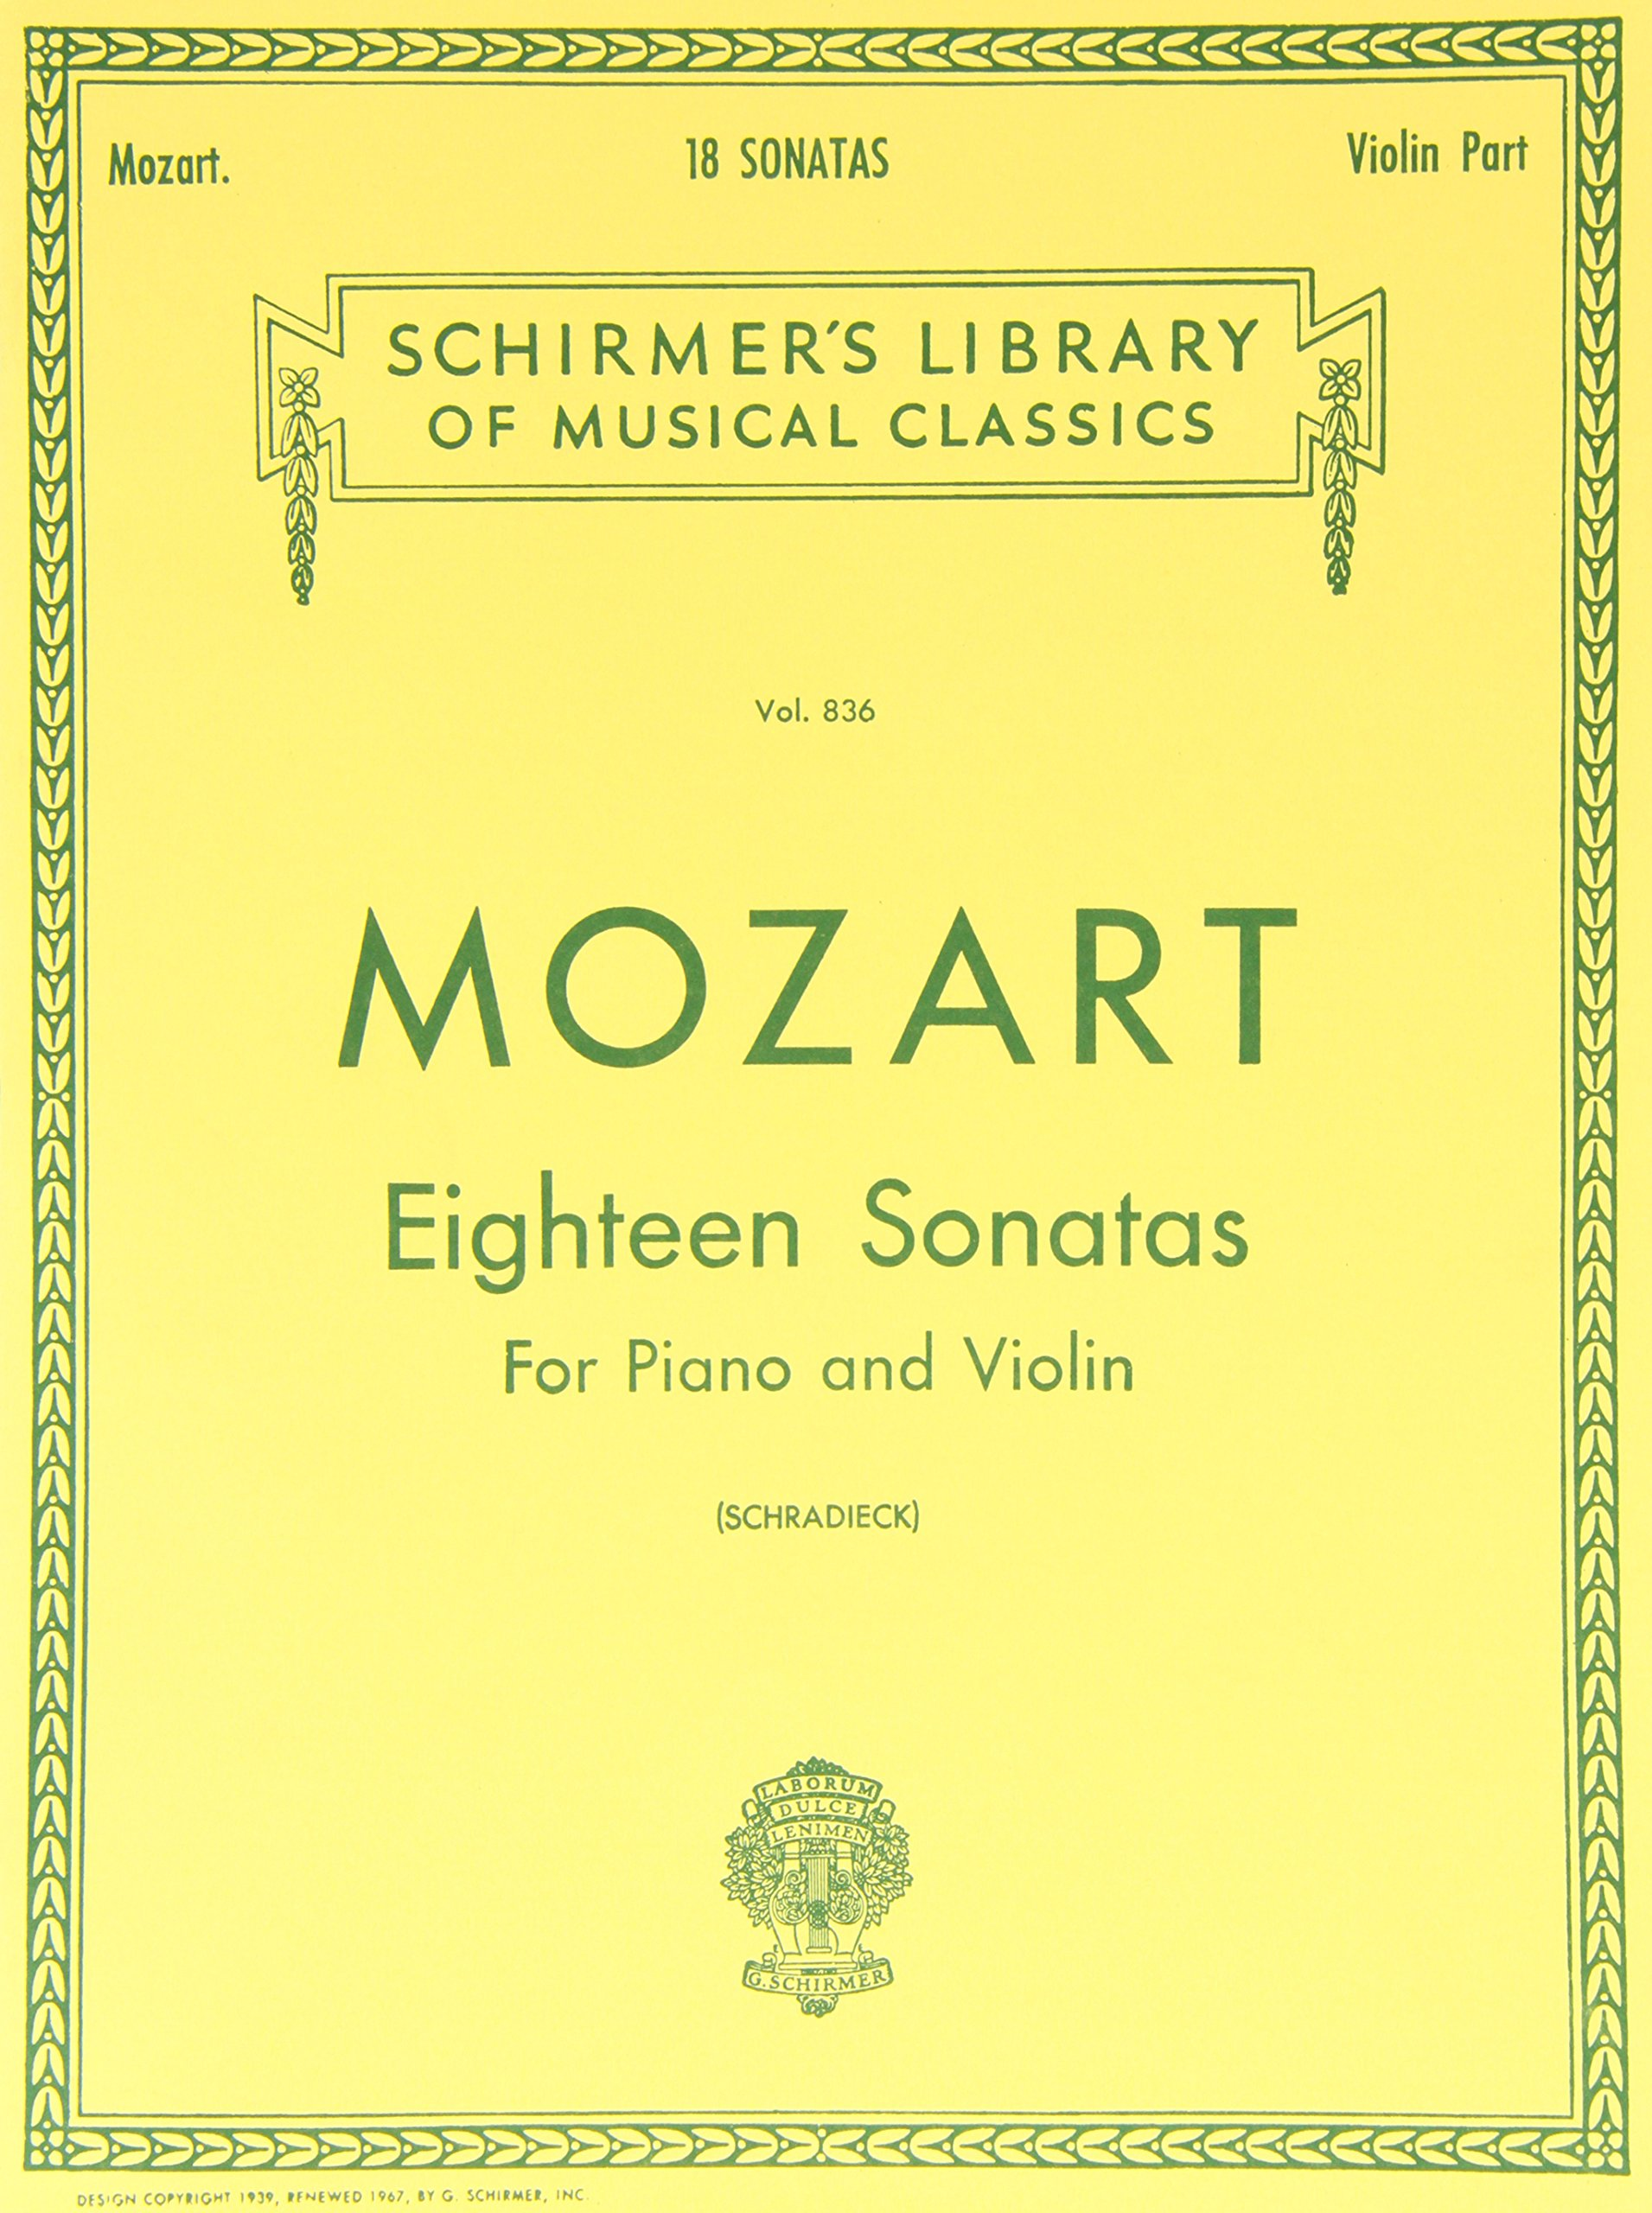 Mozart: Eighteen Sonatas For Piano and Violin (Schirmer's Library of Musical  Classics, Vol. 836) Paperback – November 1, 1986